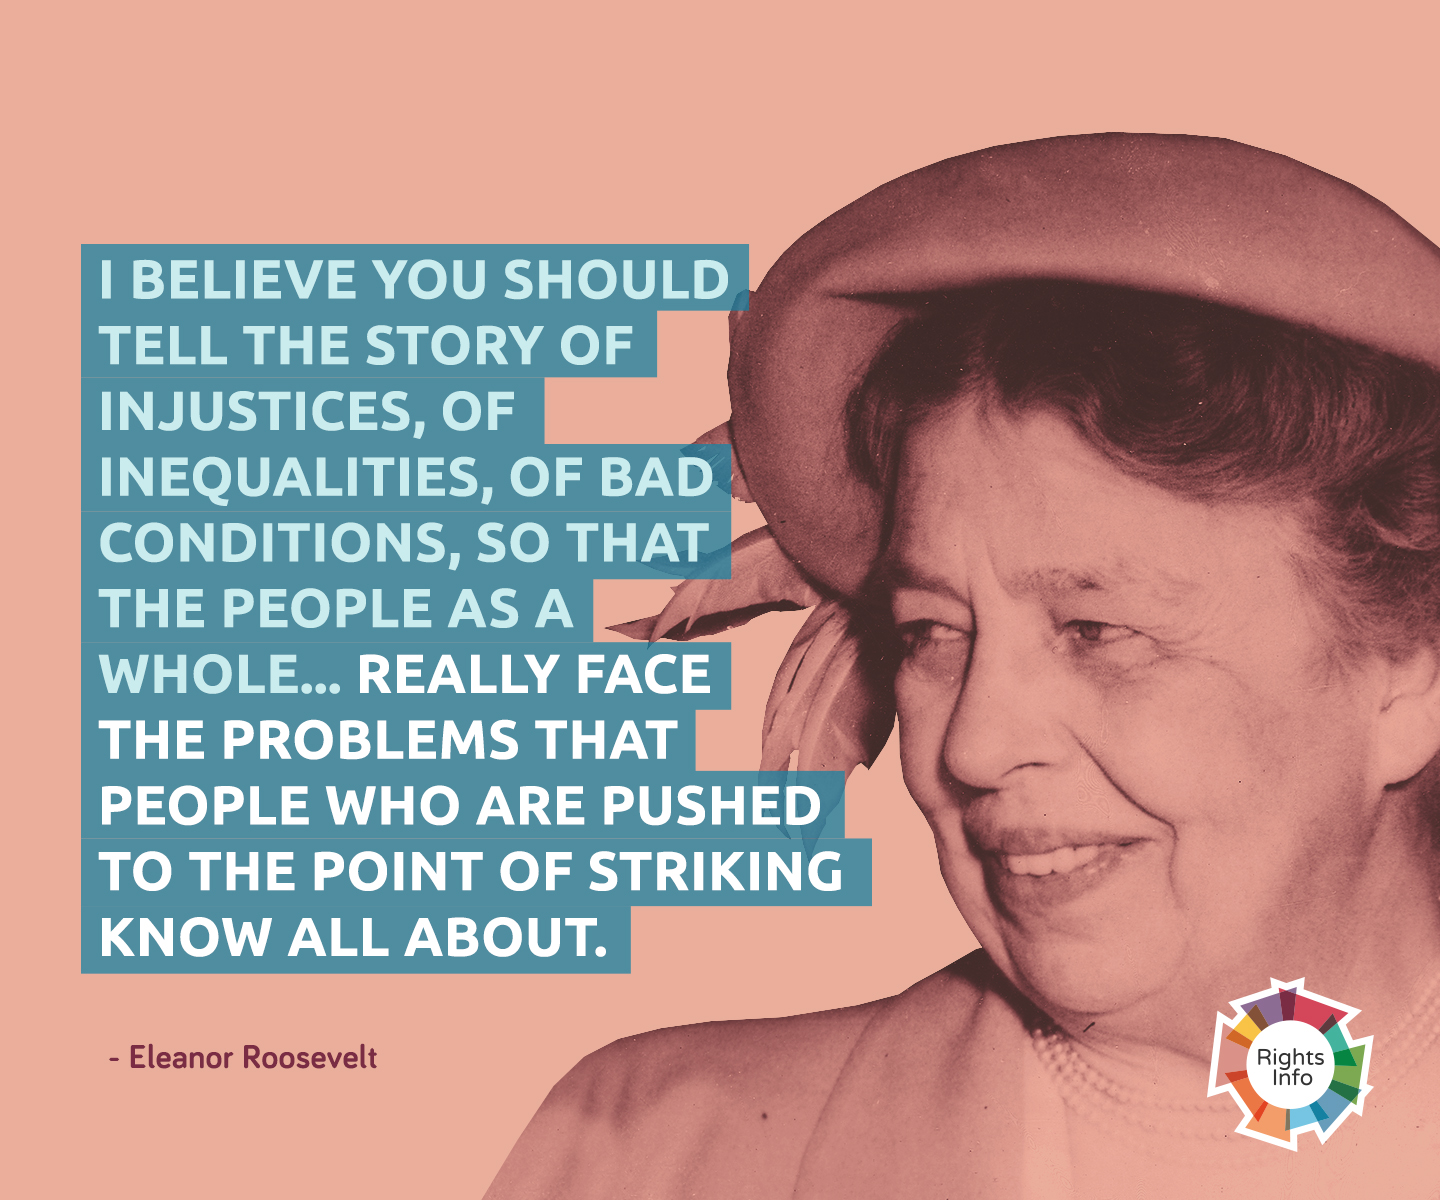 Eleanor Roosevelt Shared Values Rightsinfo